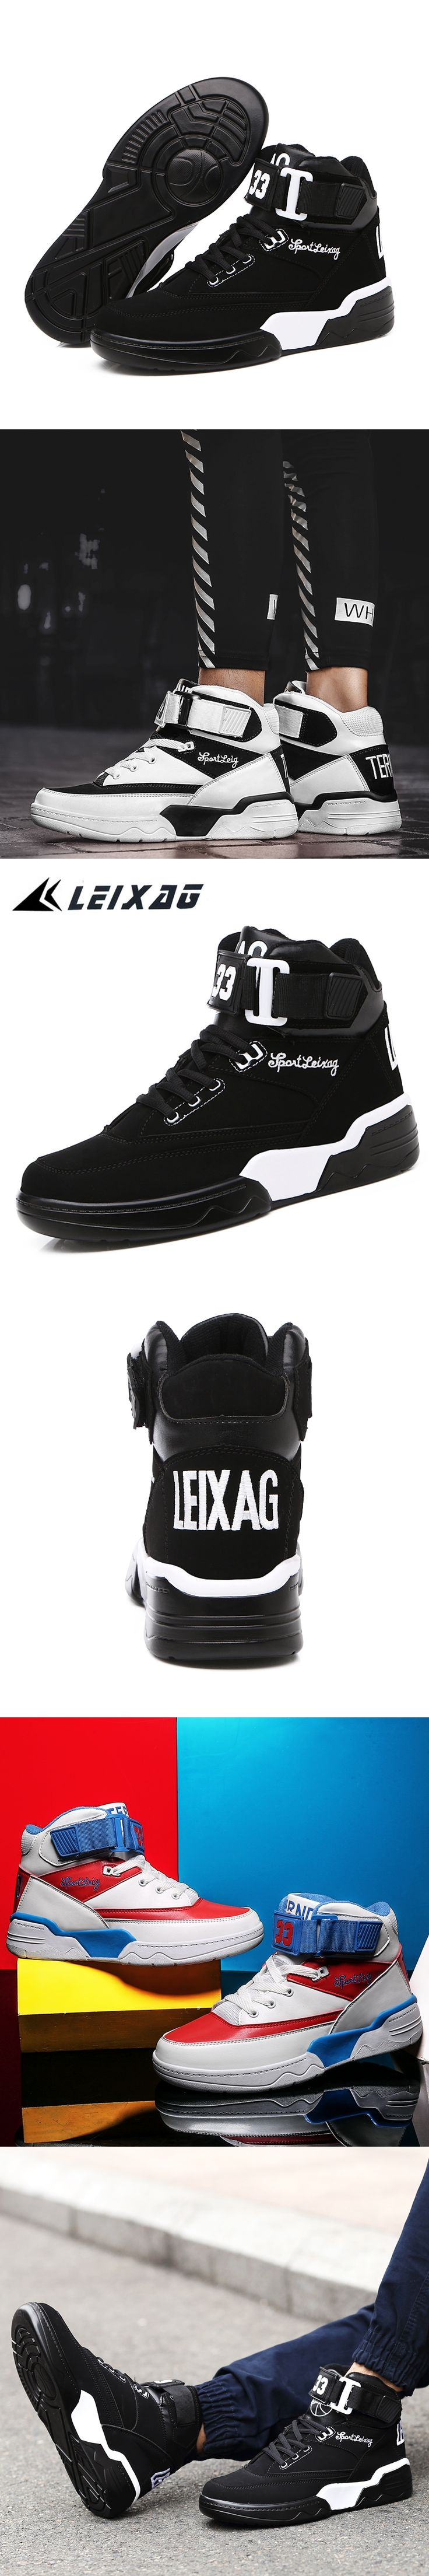 LEIXAG Men's Basketball Shoes Damping Men Sports Shoes High Top Breathable  Trainers Leather Sneakers Outdoor Jordan